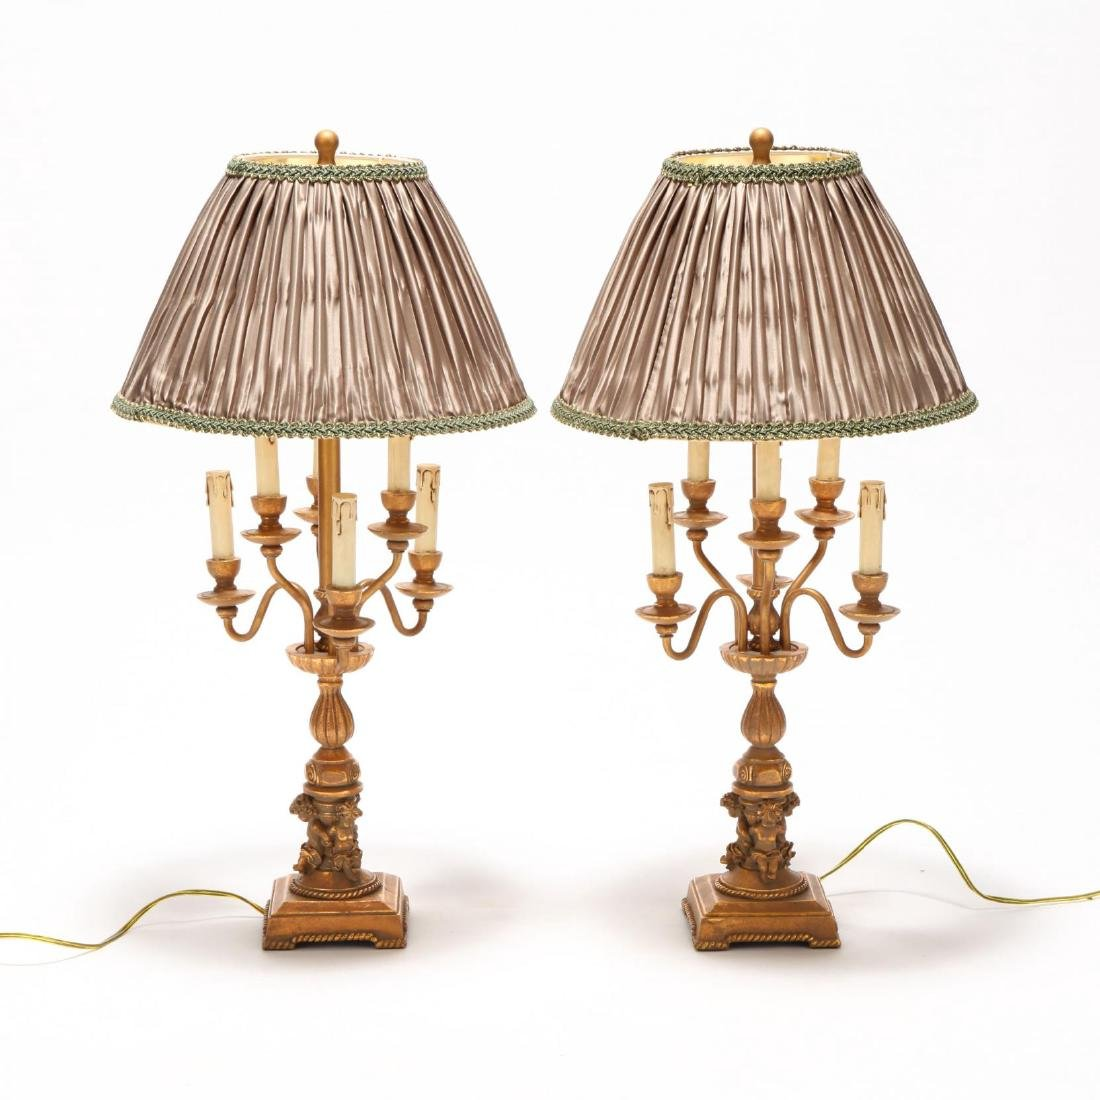 Pair of Italianate Style Candelabra Table Lamps - 4